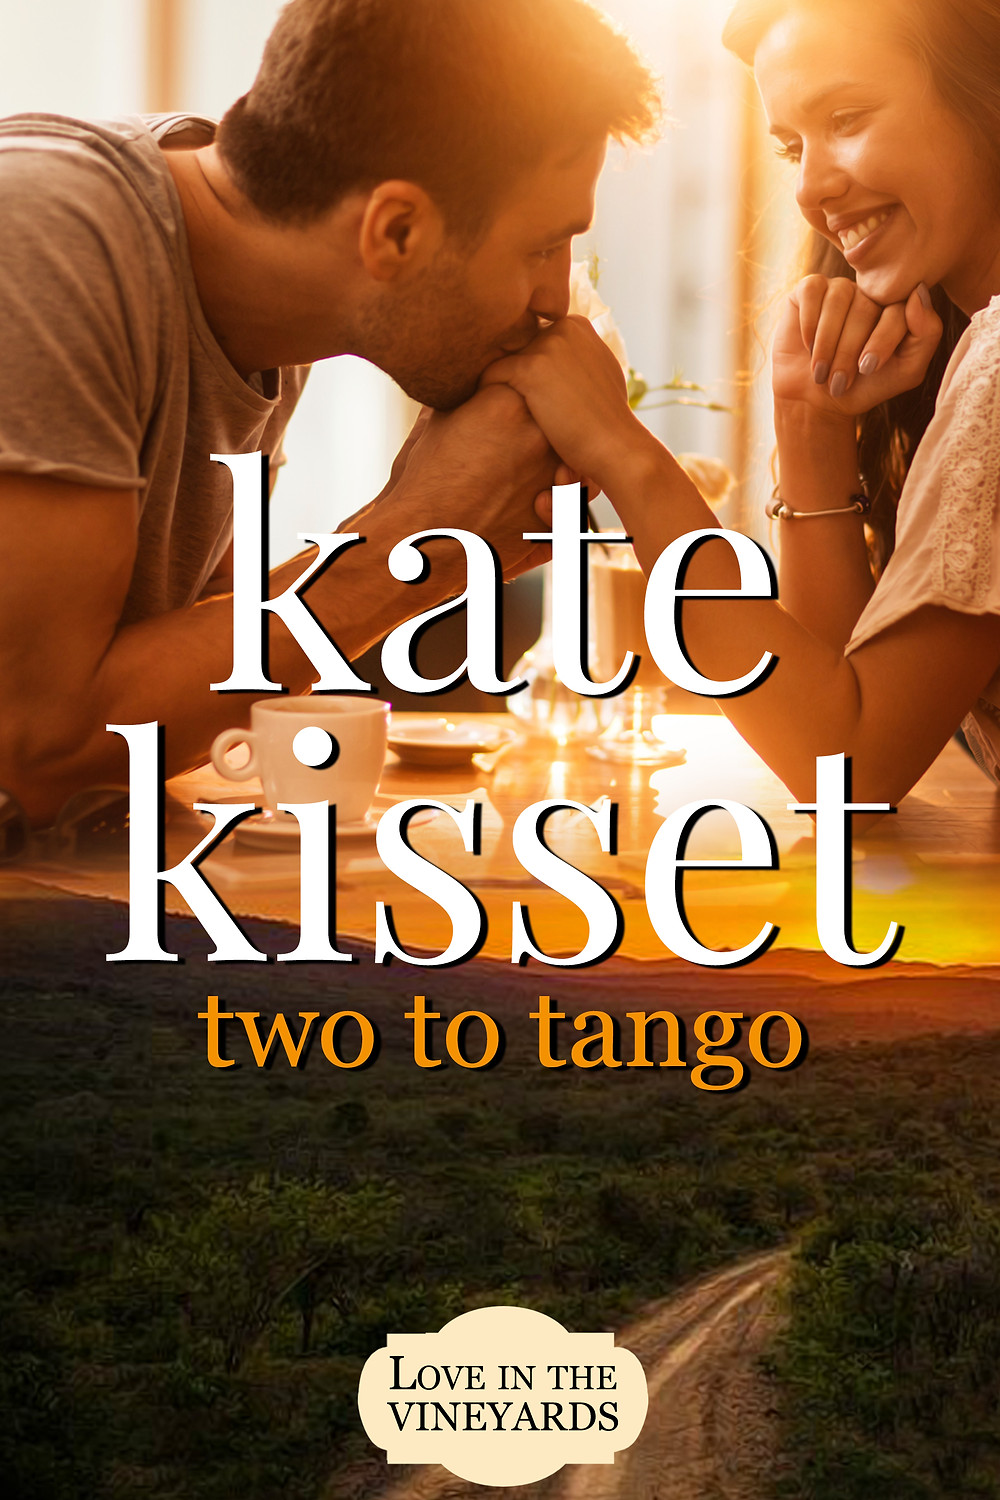 Two to Tango~ A new romantic comedy from Kate KIsset